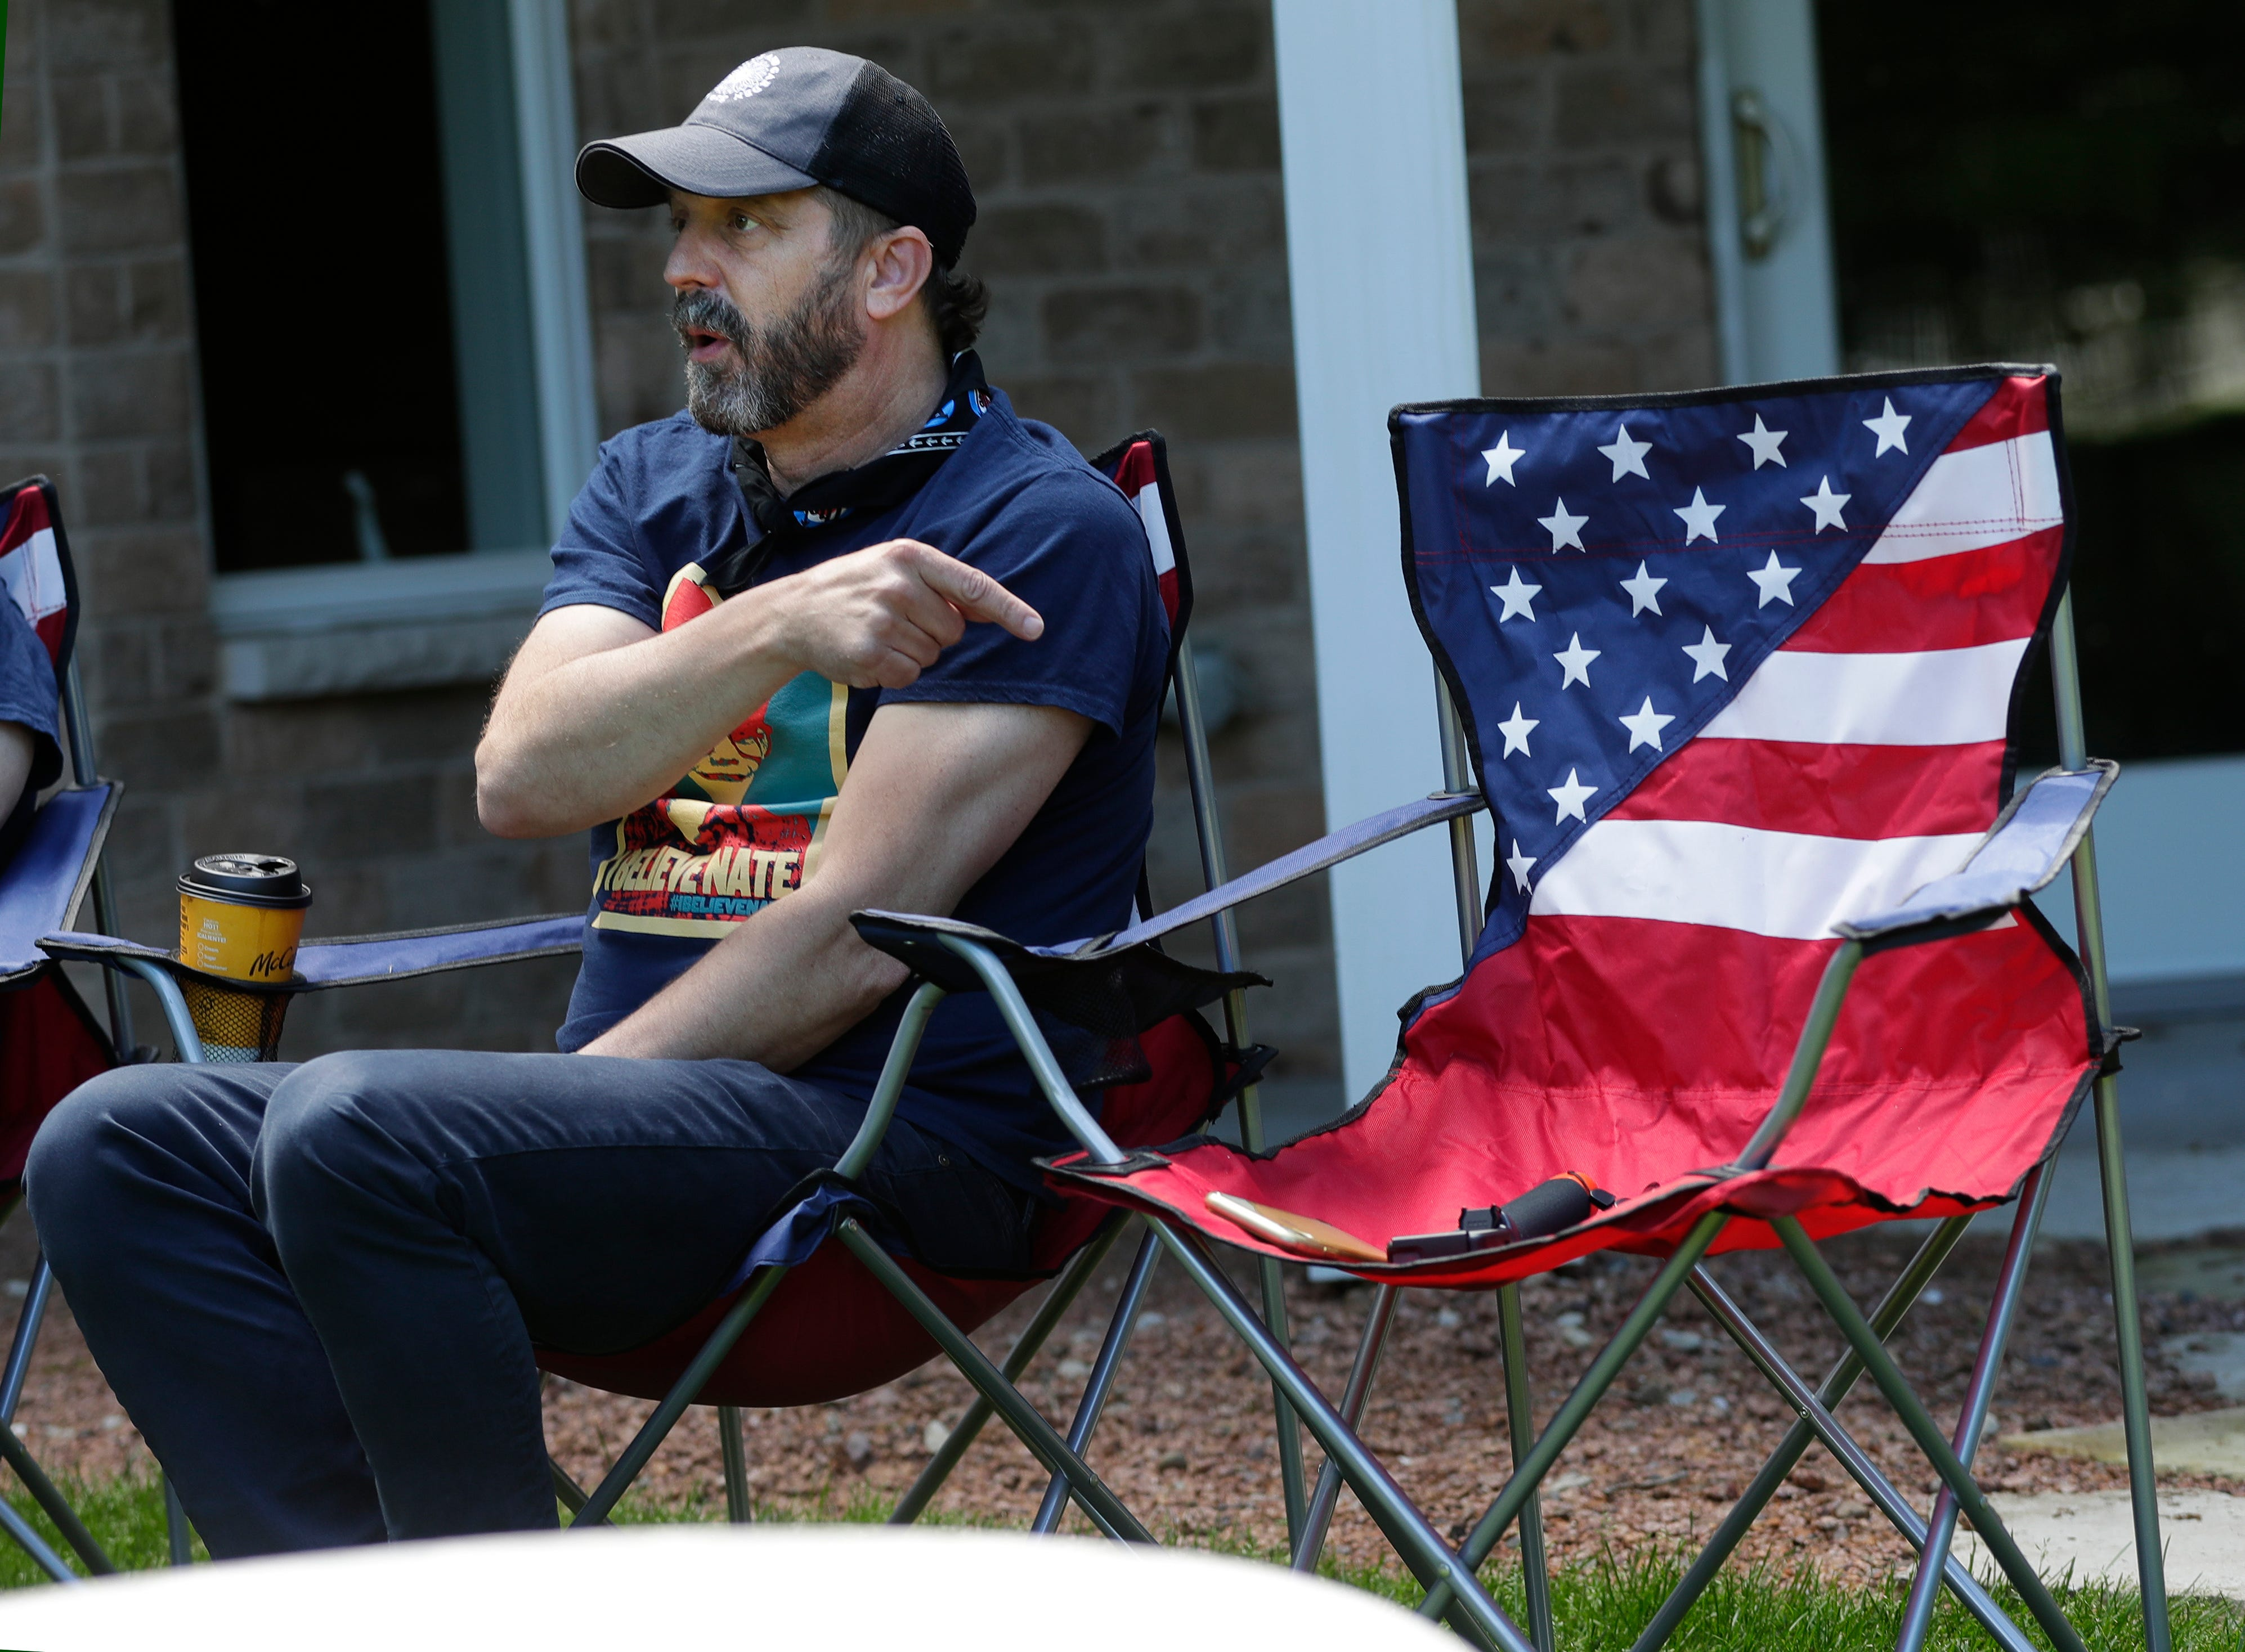 Aaron Lindstrom points to an empty chair in his parents' backyard in Hobart, Wis. on June 6, 2020, while saying his brother, Nate, could have been sitting there. Nate Lindstrom, 45, said three priests sexually abused him as a teen; he died by suicide in March 2020.